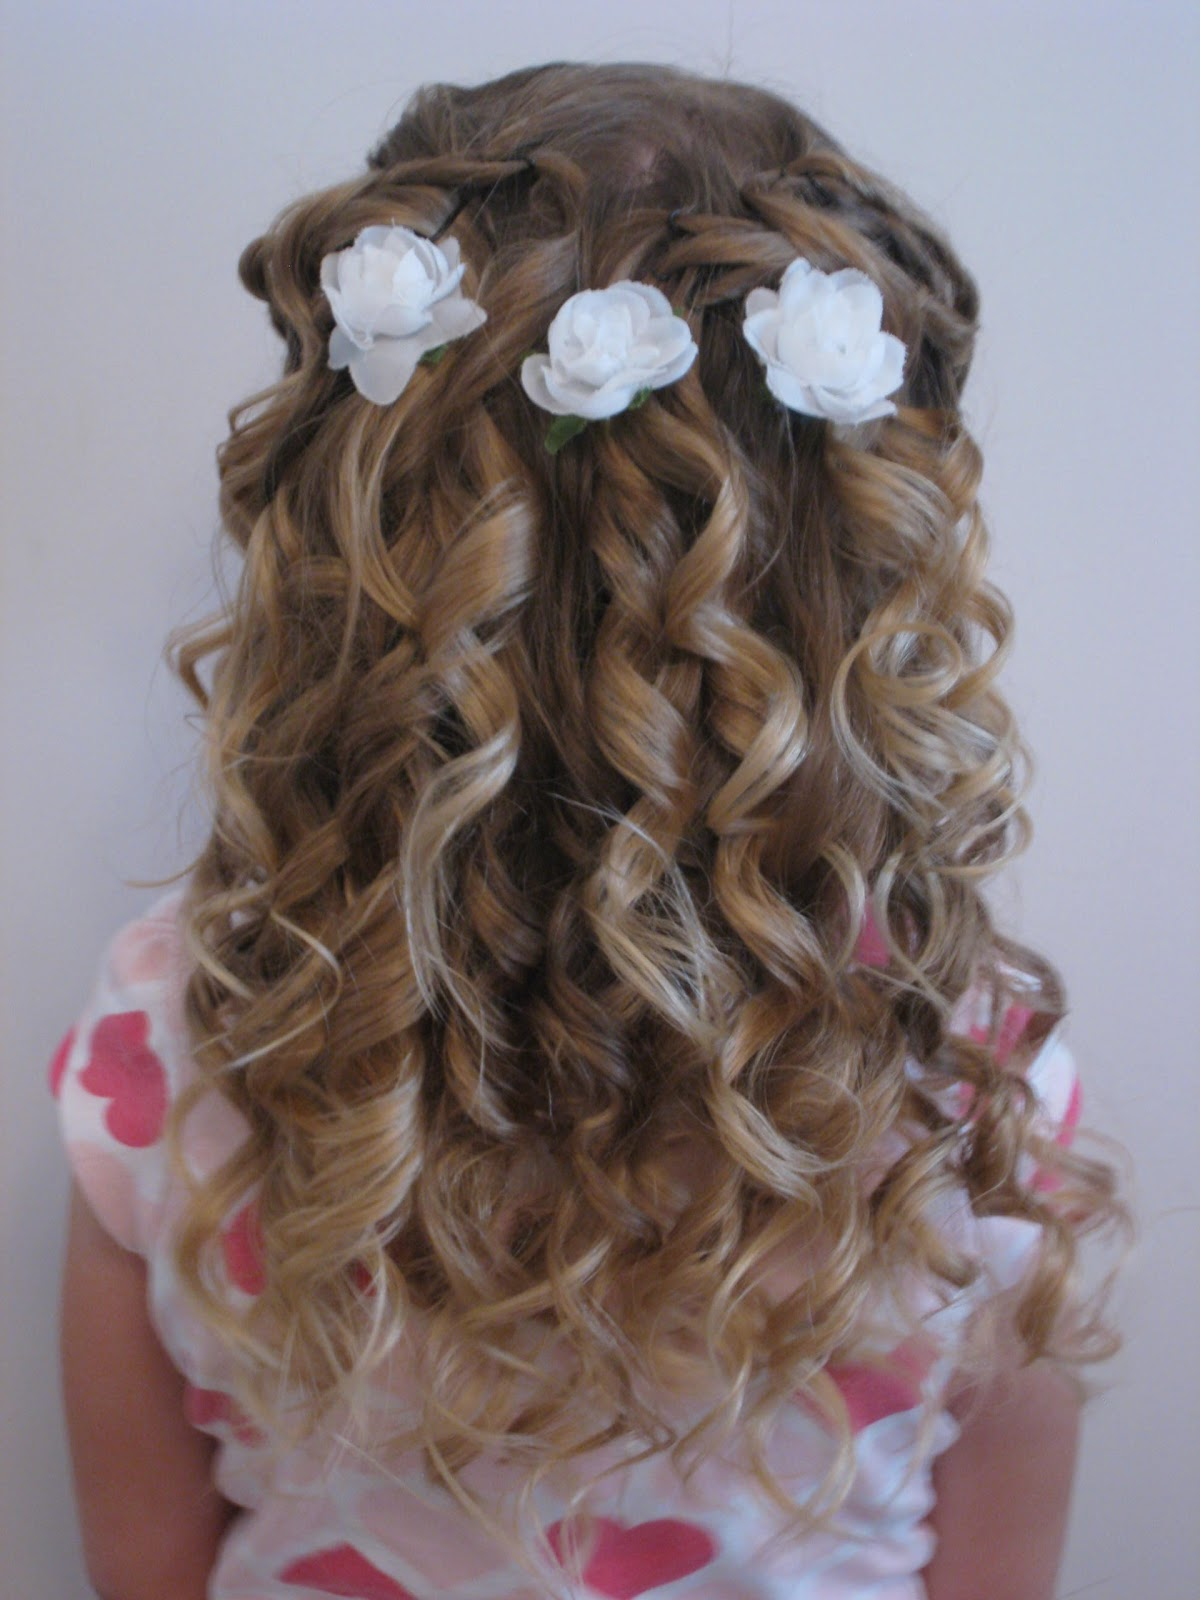 Flower Girl Hair Inspiration. 1200 x 1600.Hairstyles Girls Soccer